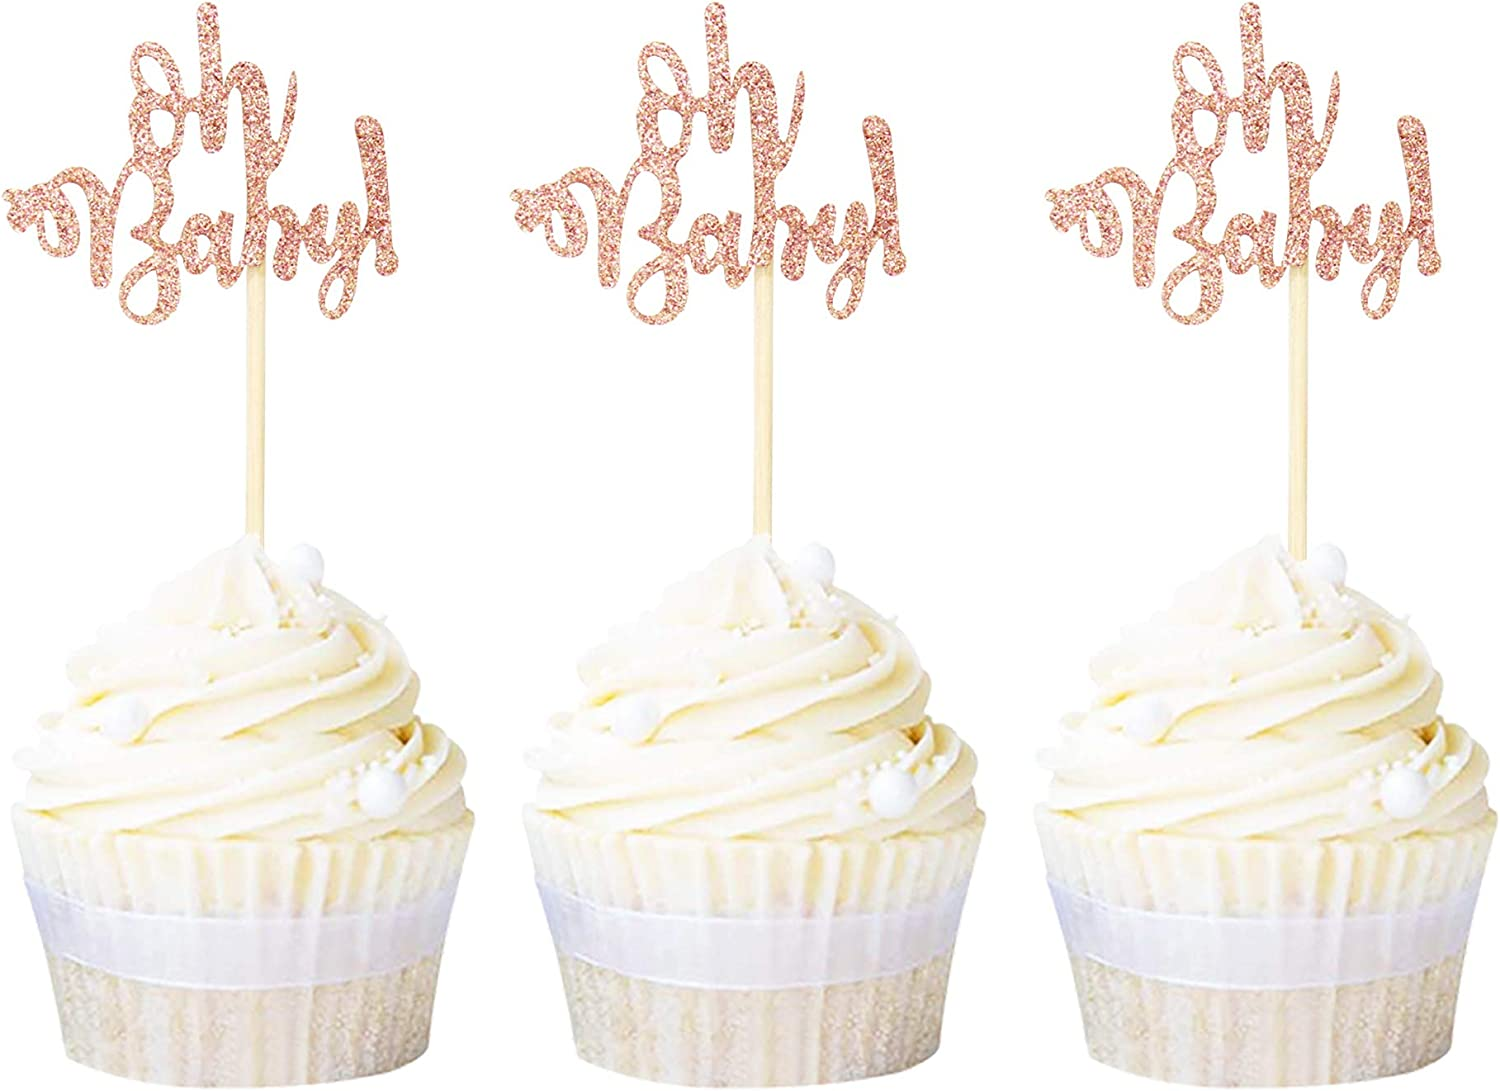 Ercadio 24 Pack Oh Baby Cupcake Toppers Rose Gold Glitter Baby Shower Cupcake Picks Boys Girls Birthday Party Cake Decorations